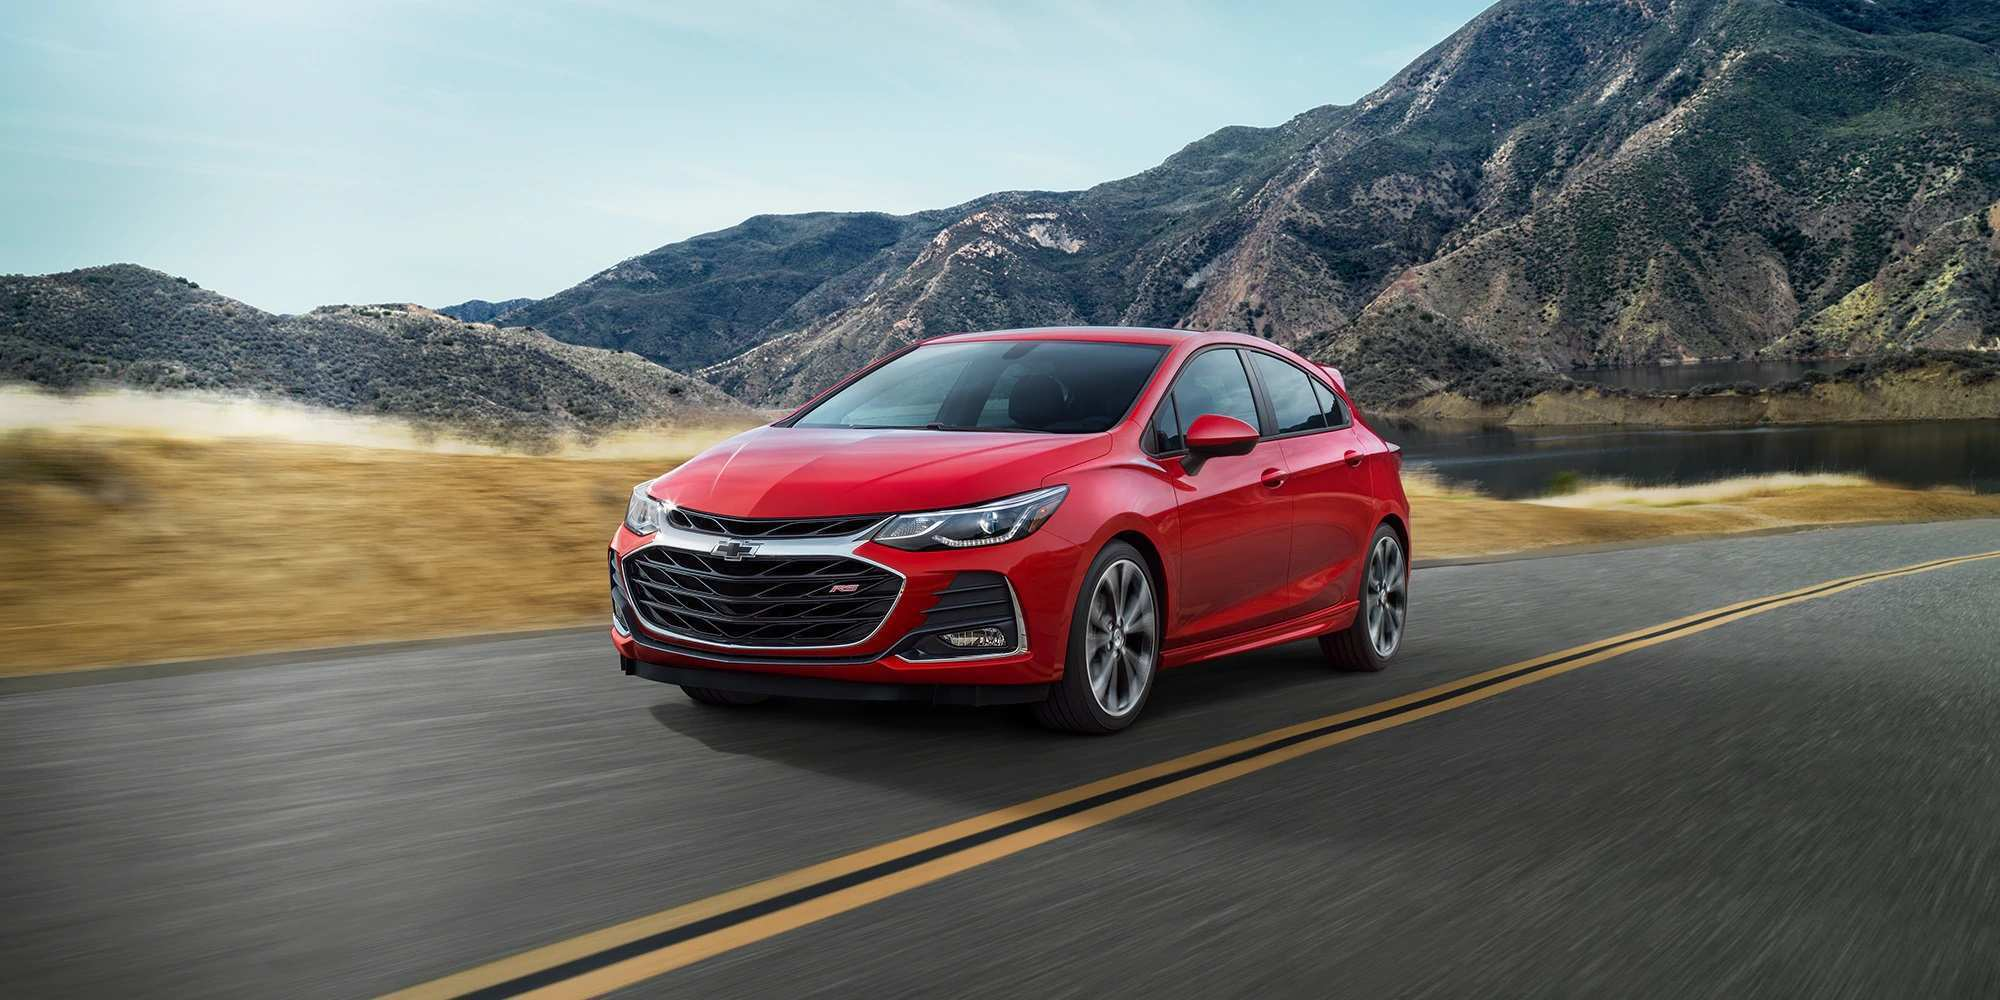 51 All New 2020 Chevrolet Cruze Price Design And Review